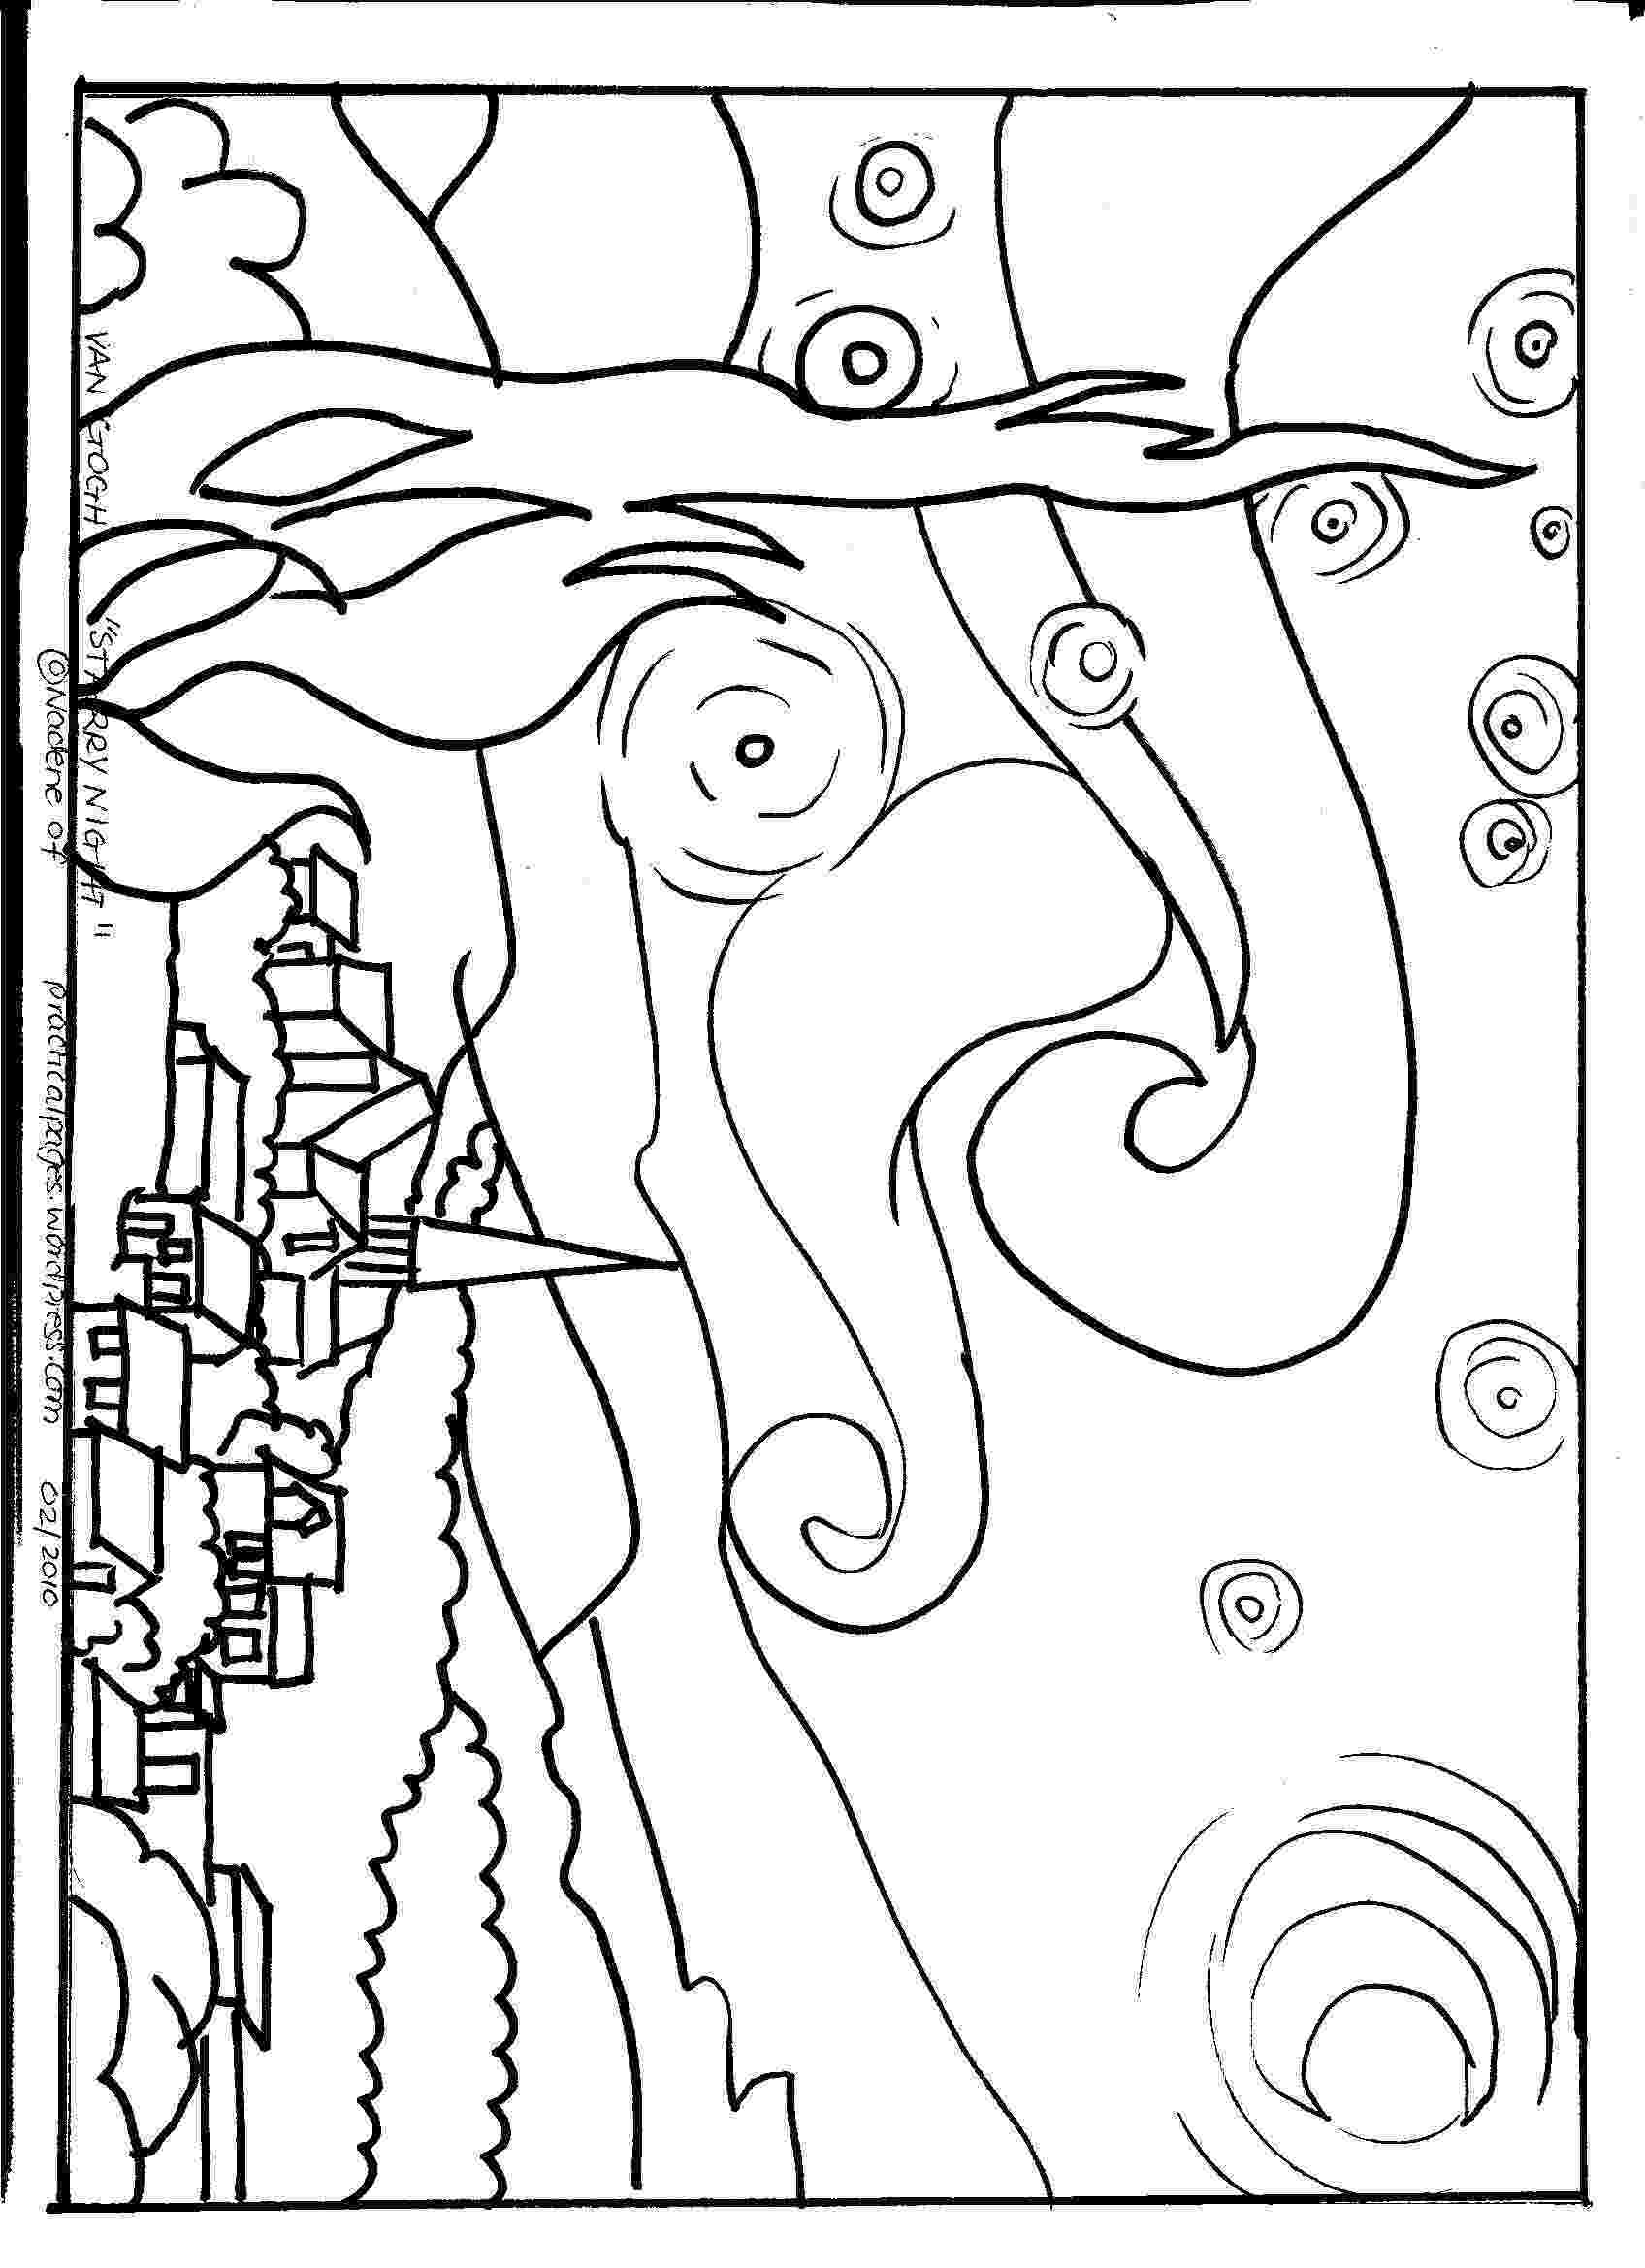 famous painting coloring pages happy family art original and fun coloring pages coloring painting pages famous